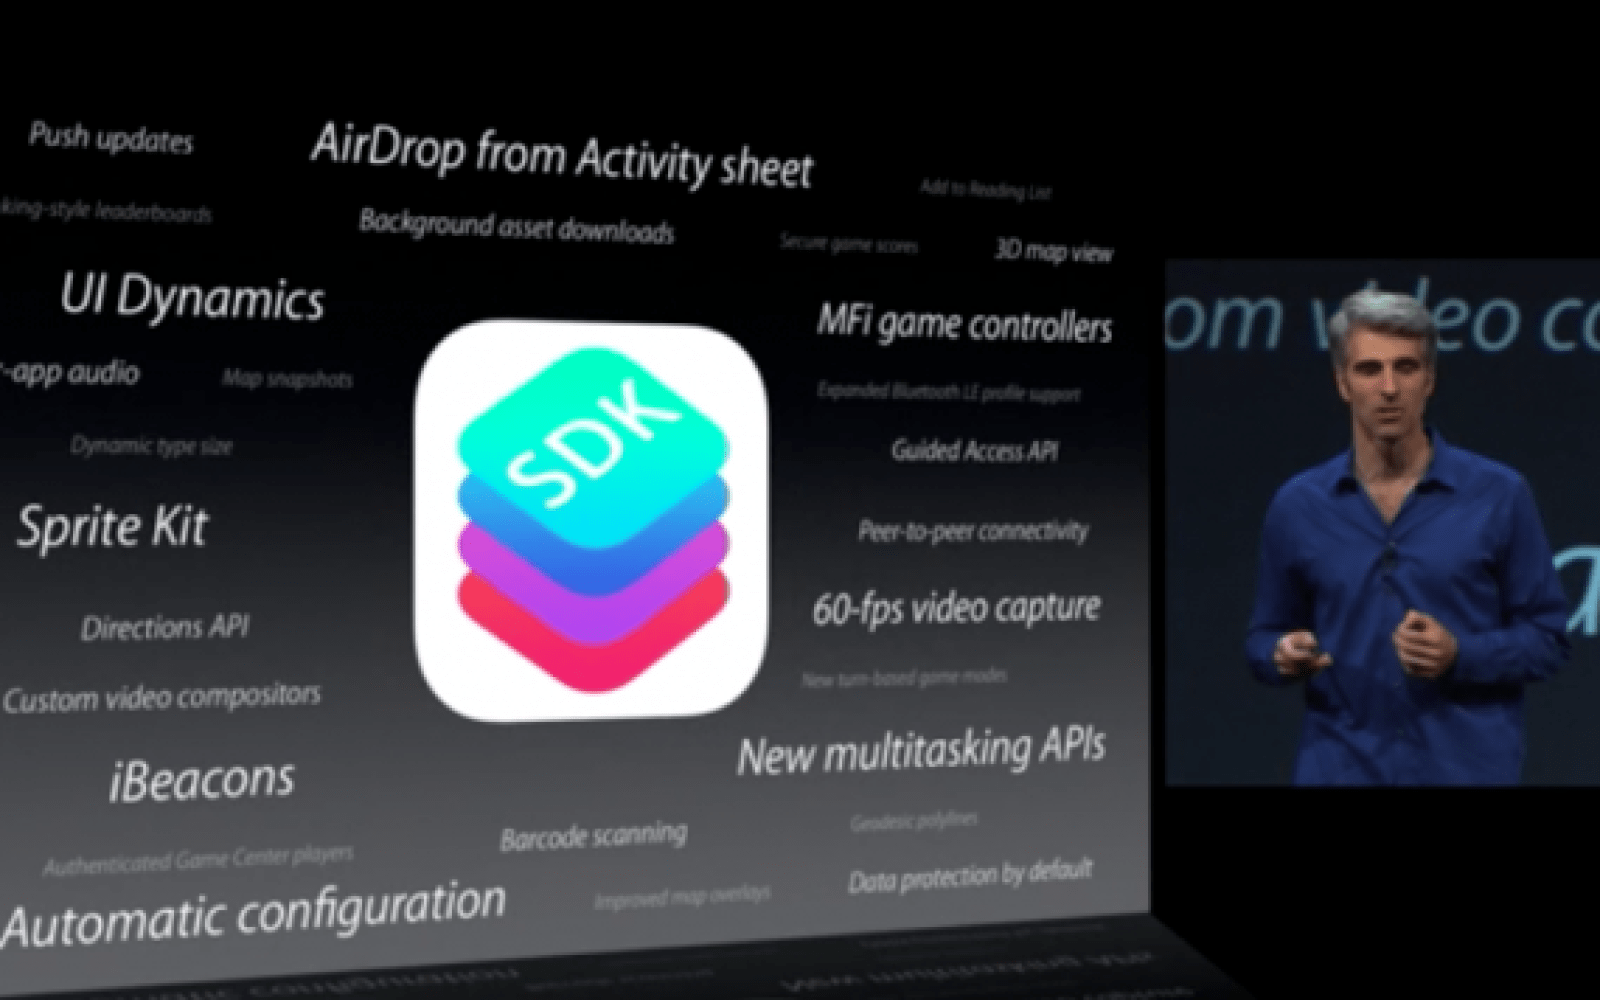 New for app developers in iOS 7: text to speech, motion effects, background downloads, free in-app purchases, more